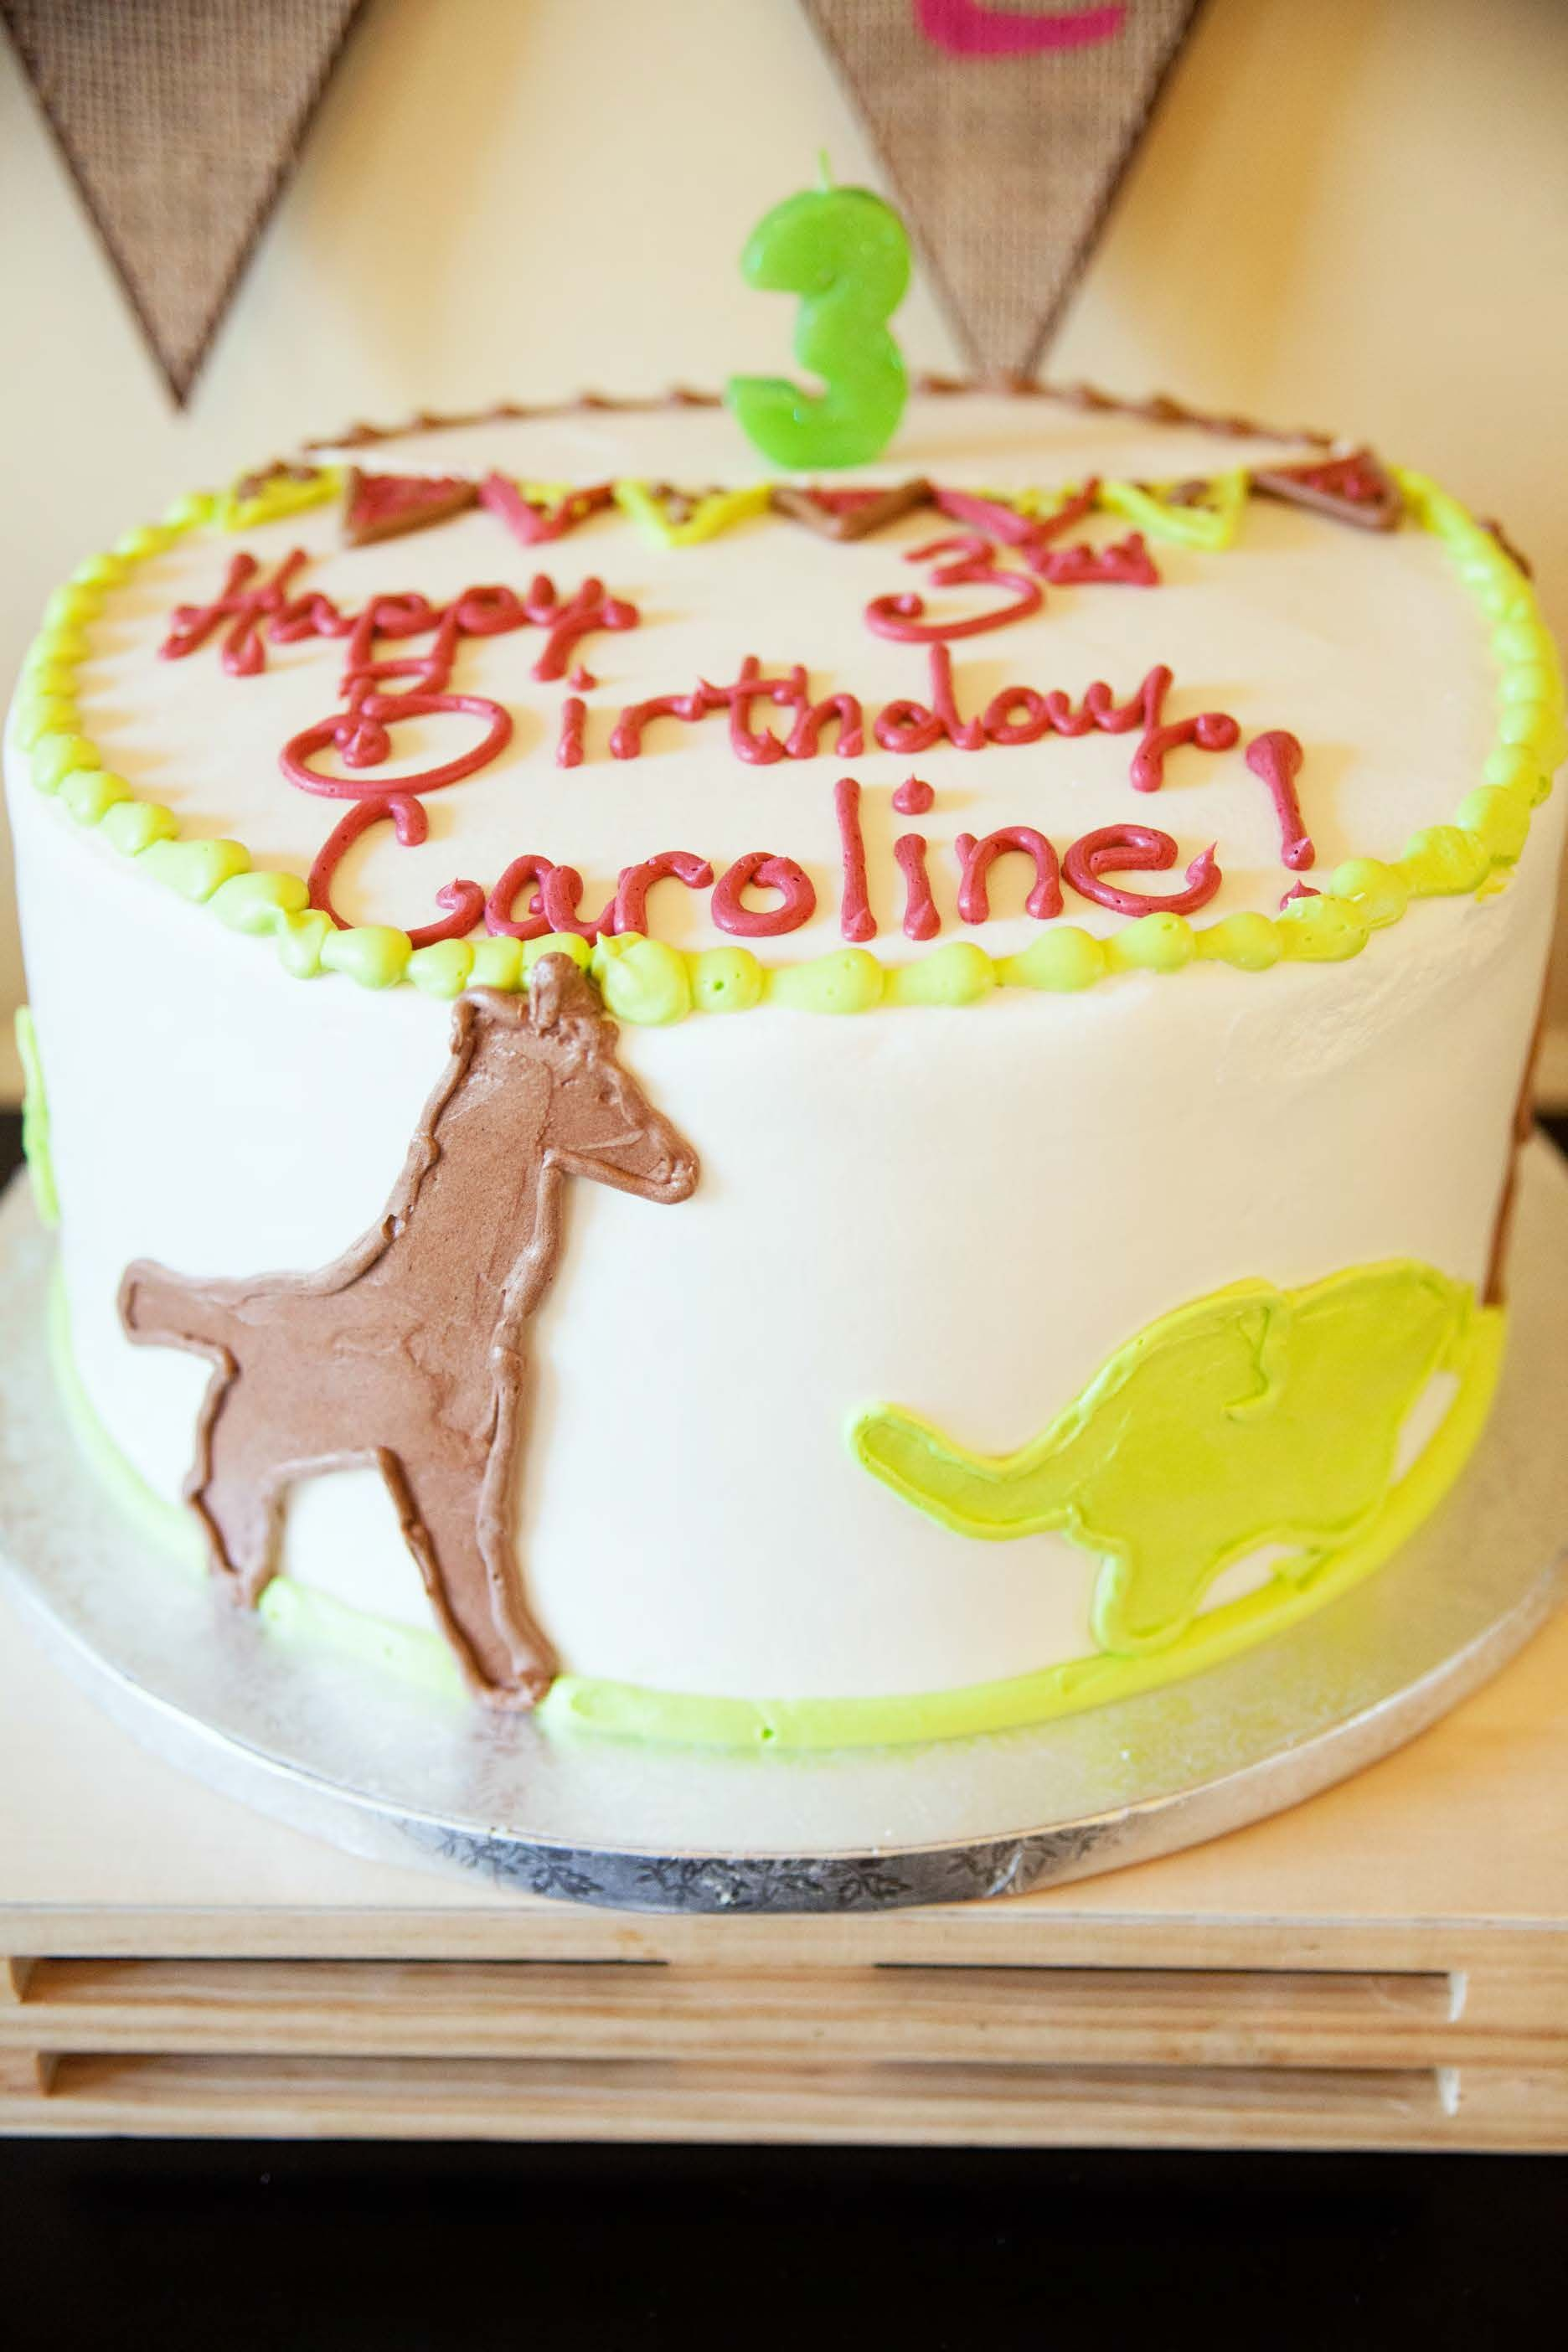 Safari birthday cake with animal silhouettes from Publix